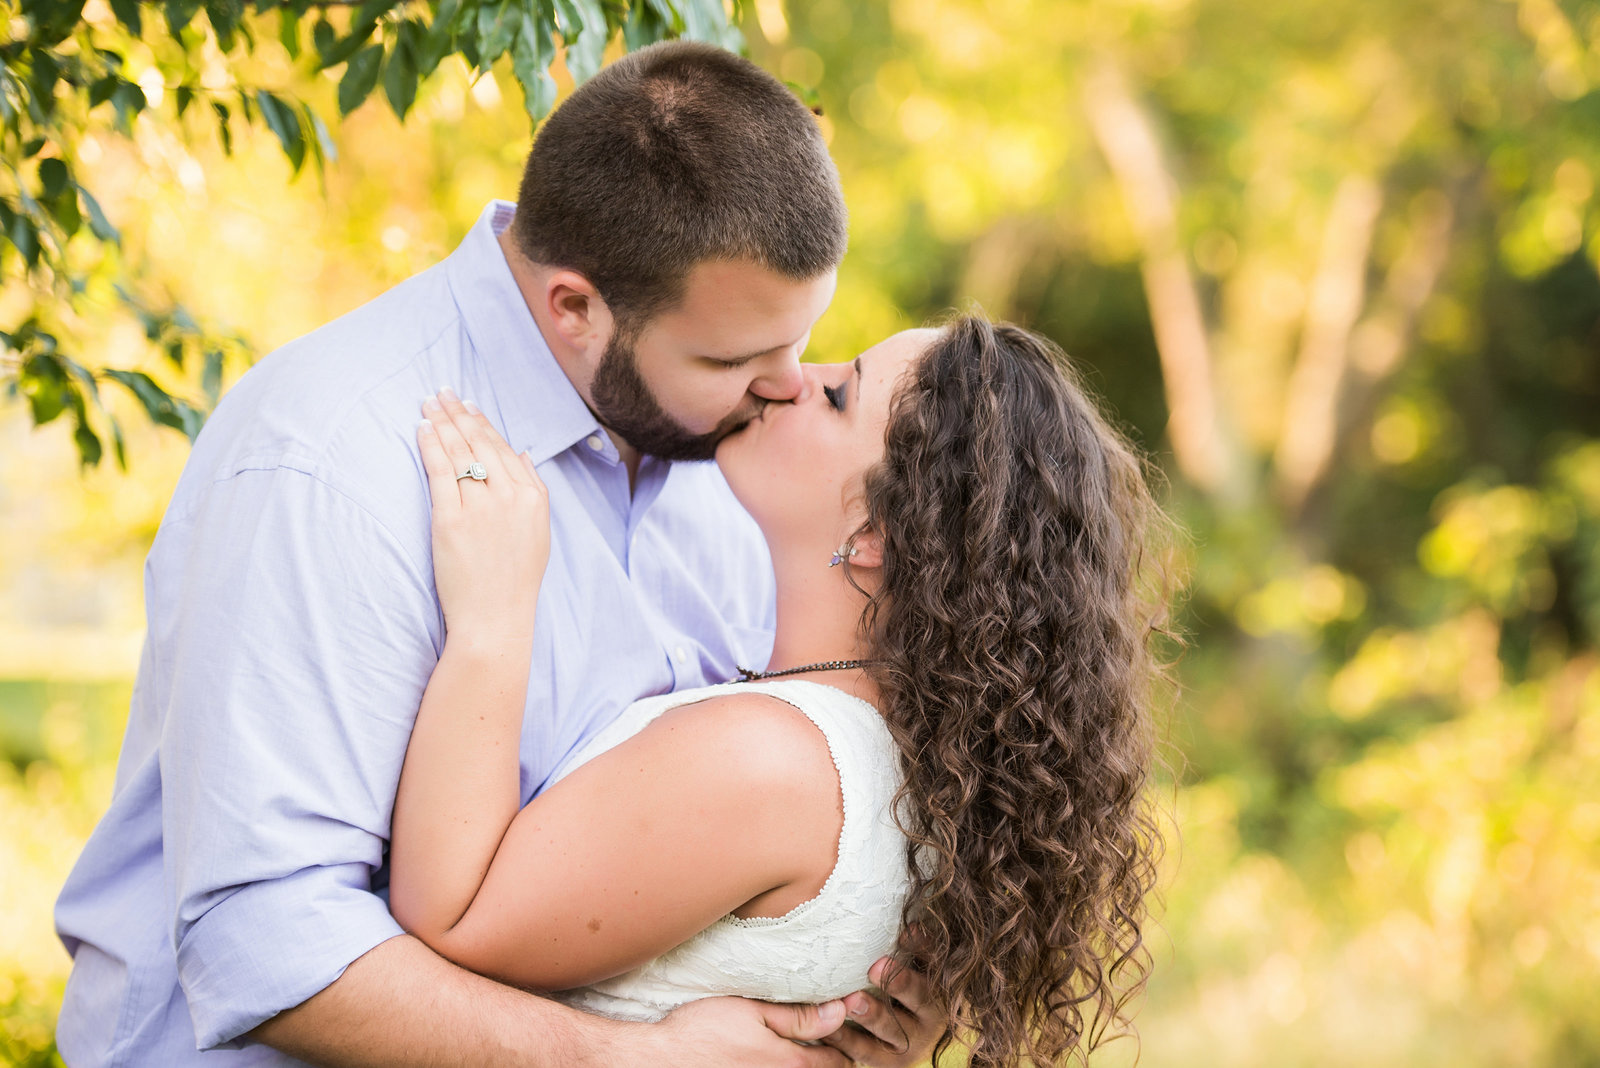 NJ_Rustic_Engagement_Photography094